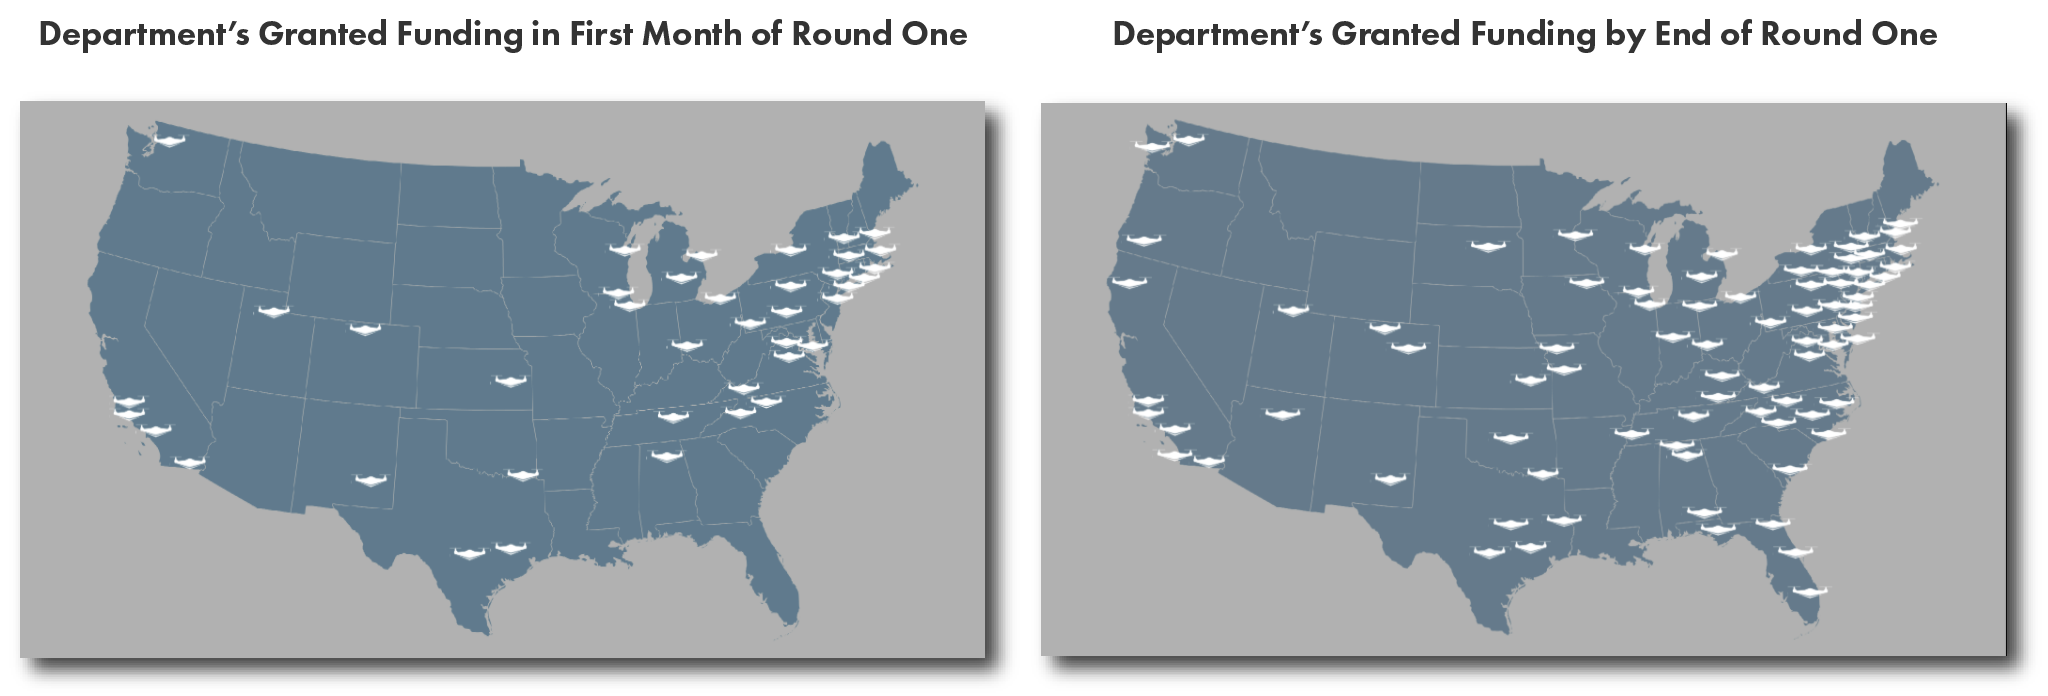 Department's awarded funding in first month vs end of Round One.